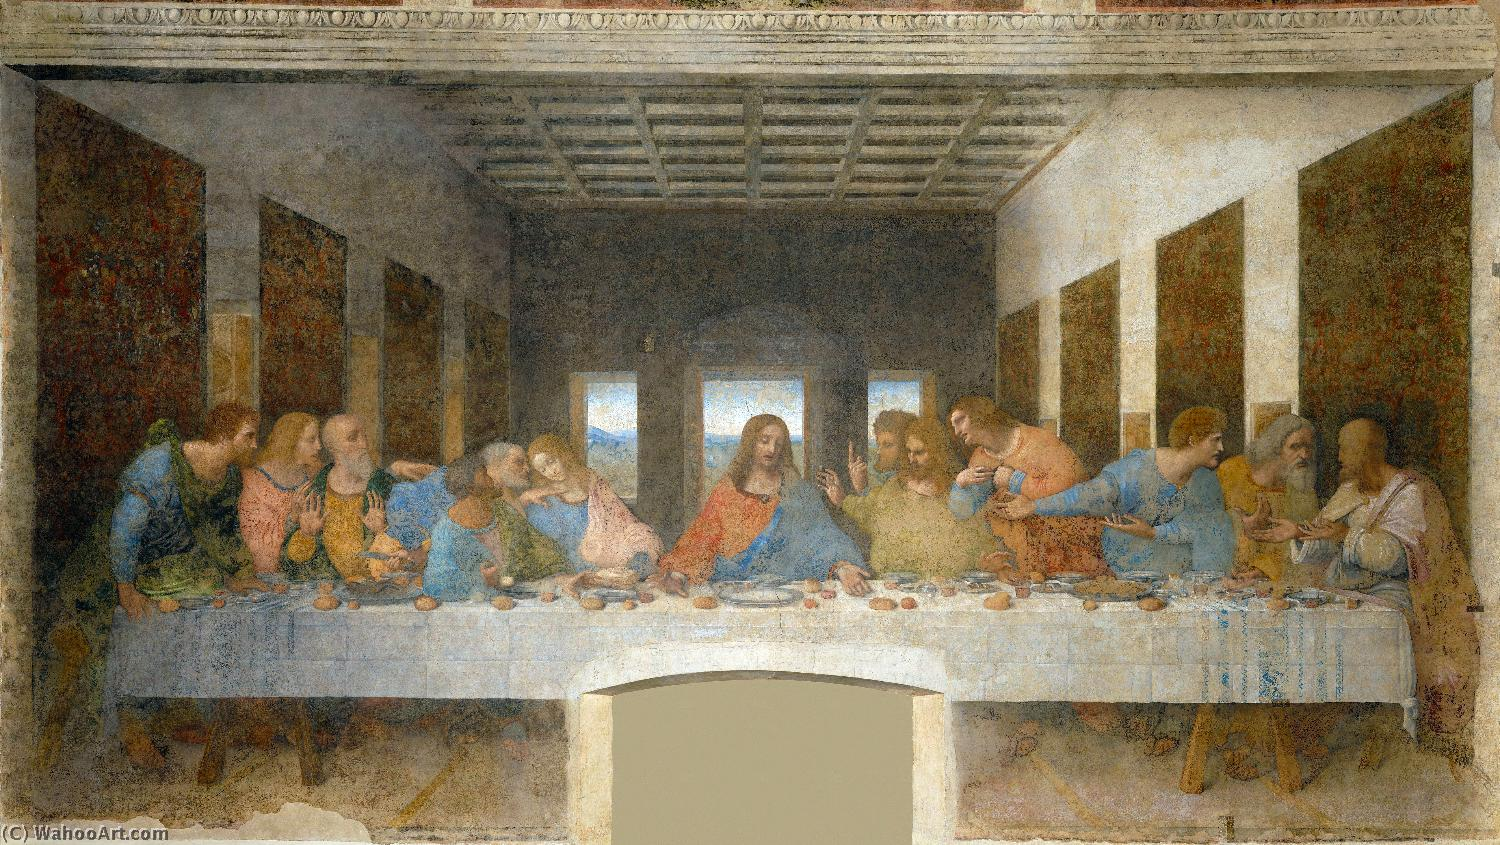 Wikioo.org - The Encyclopedia of Fine Arts - Painting, Artwork by Leonardo Da Vinci - The Last Supper